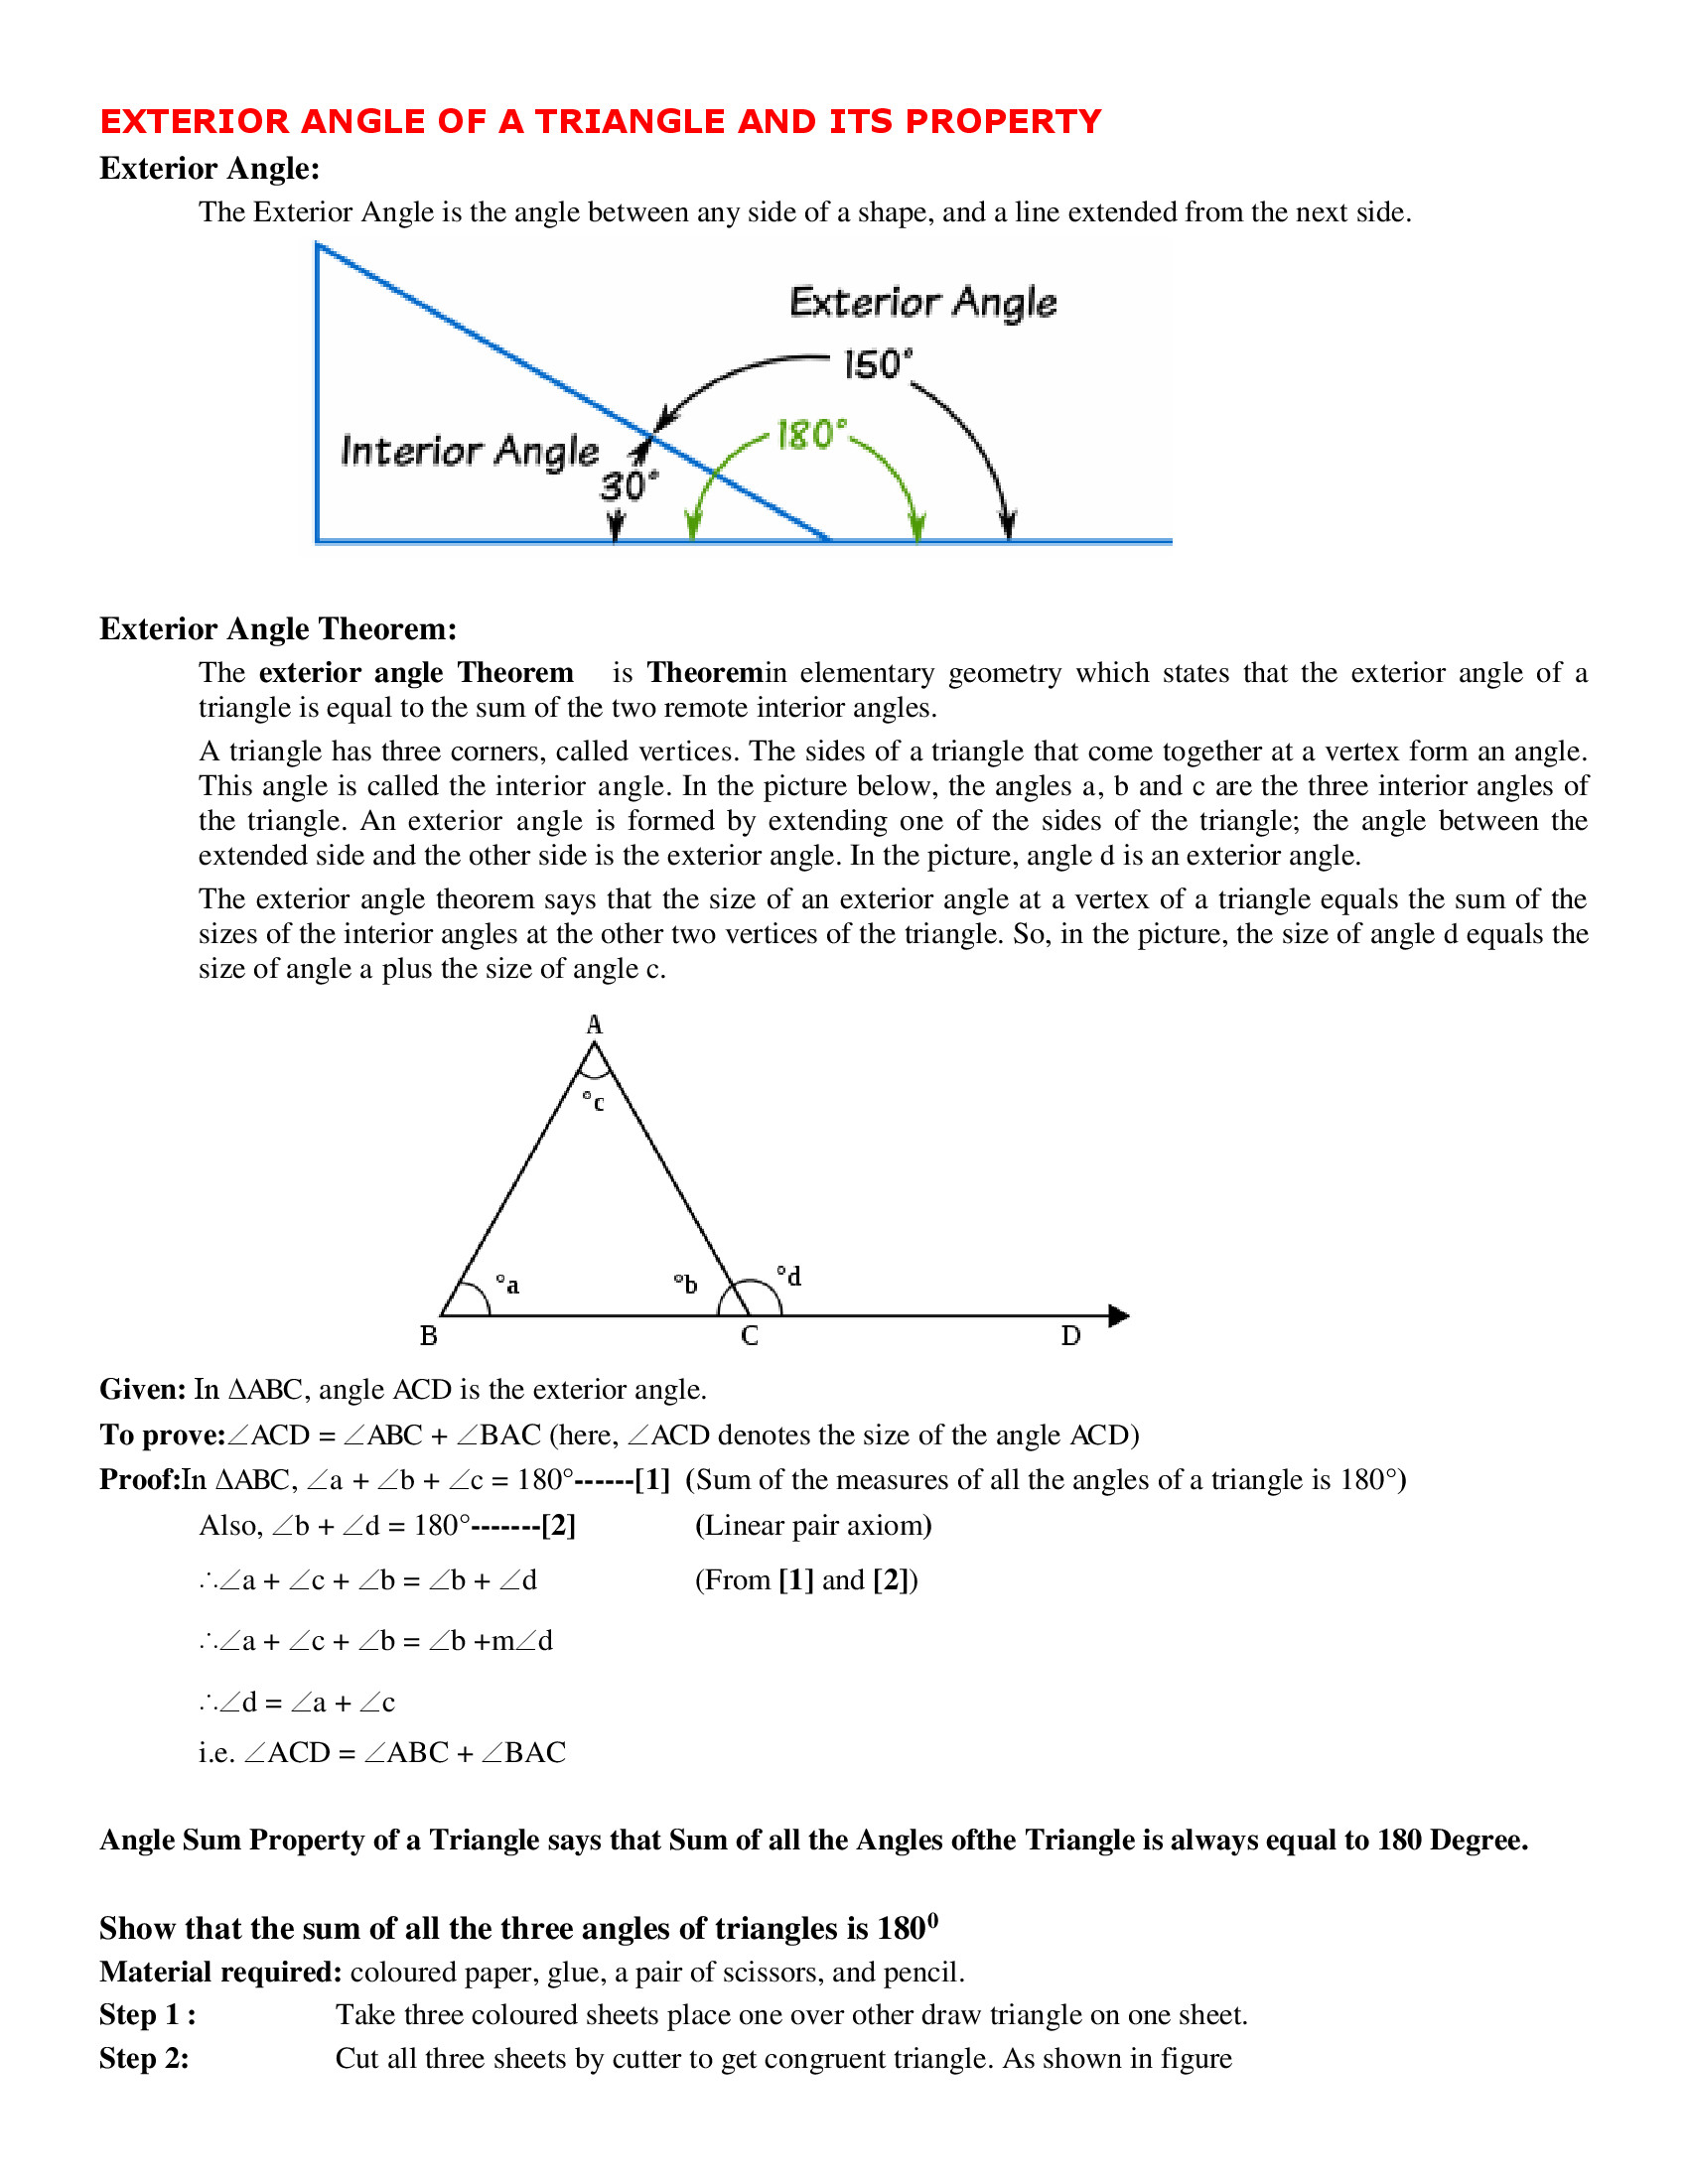 Angles In A Triangle Worksheet Exterior Angle Of A Triangle and Its Property Worksheet